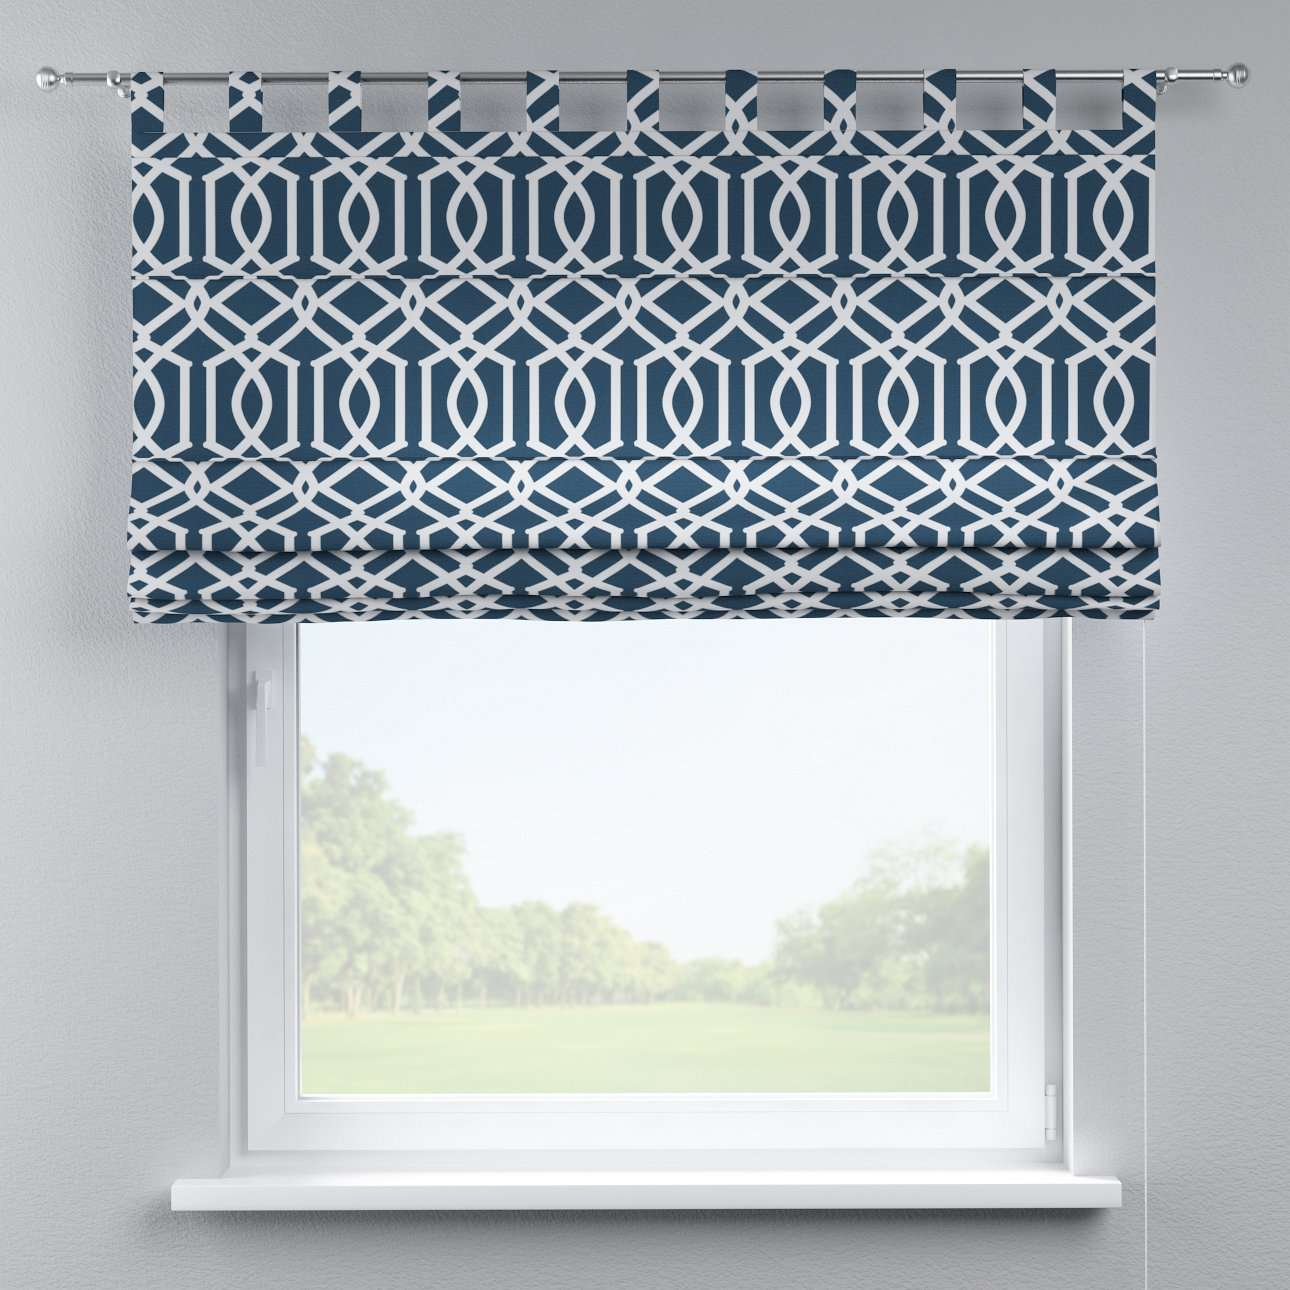 Verona tab top roman blind 80 x 170 cm (31.5 x 67 inch) in collection Comic Book & Geo Prints, fabric: 135-10